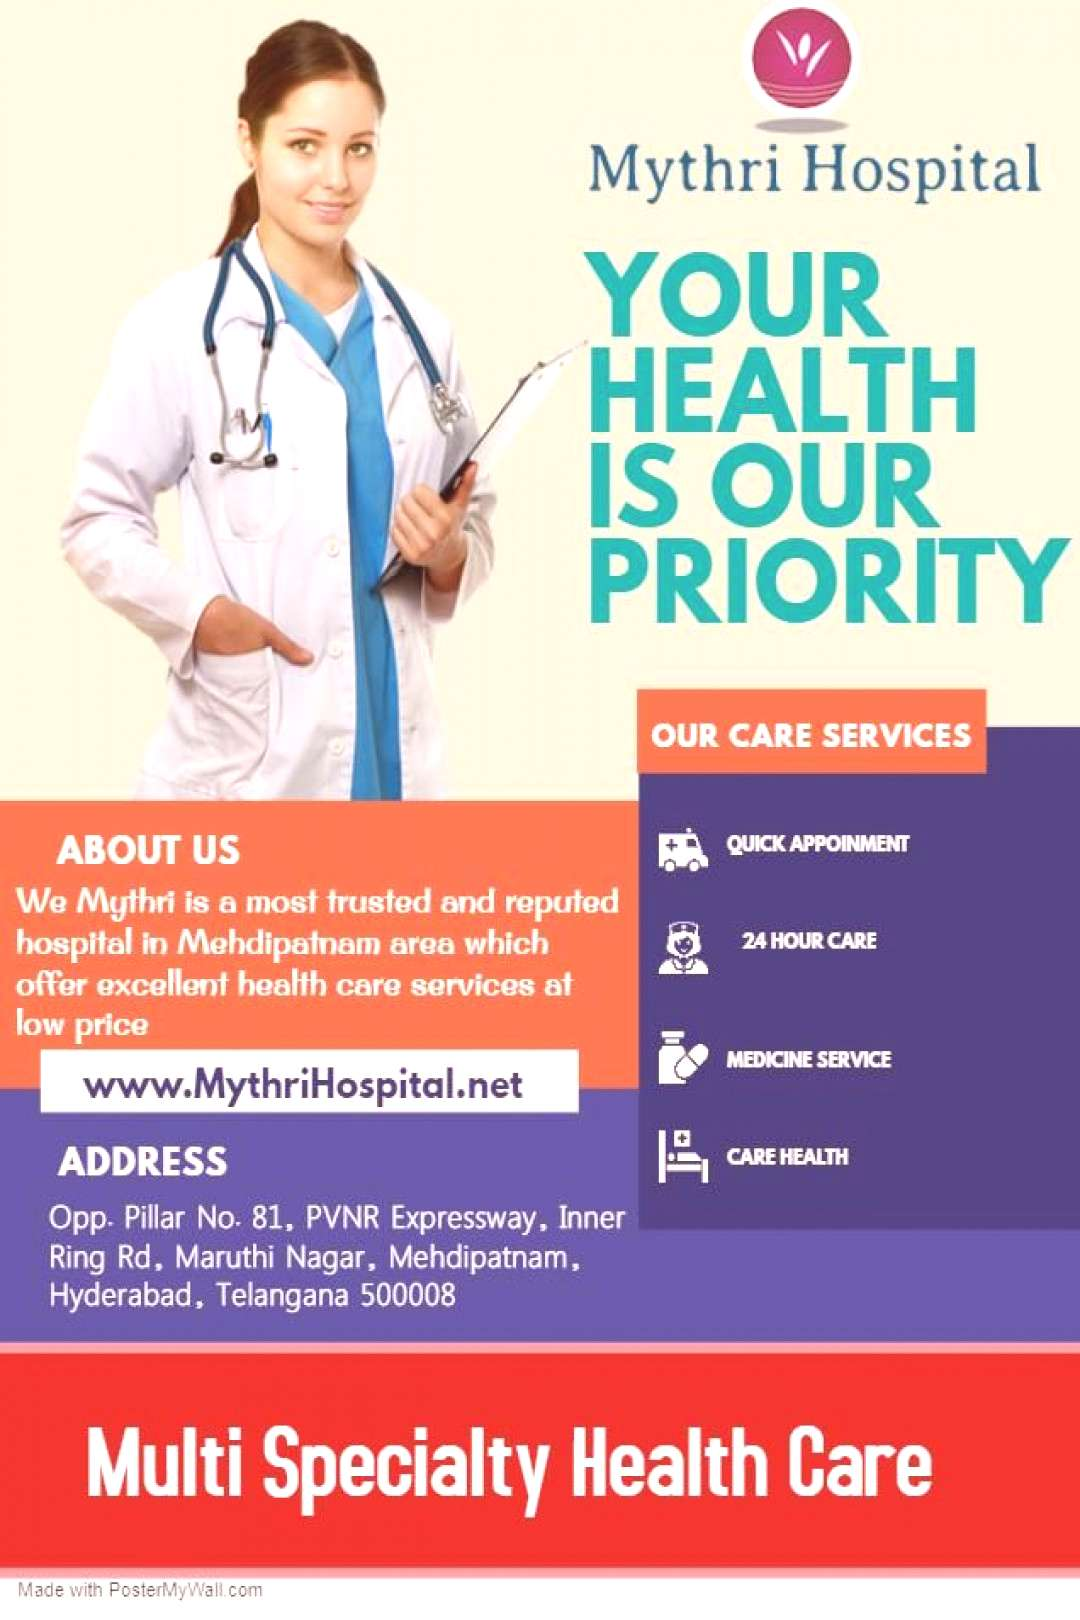 Mythri Hospital Your Is Our Most | A Specialty Centre In Which Unique For In Way With Excellent And